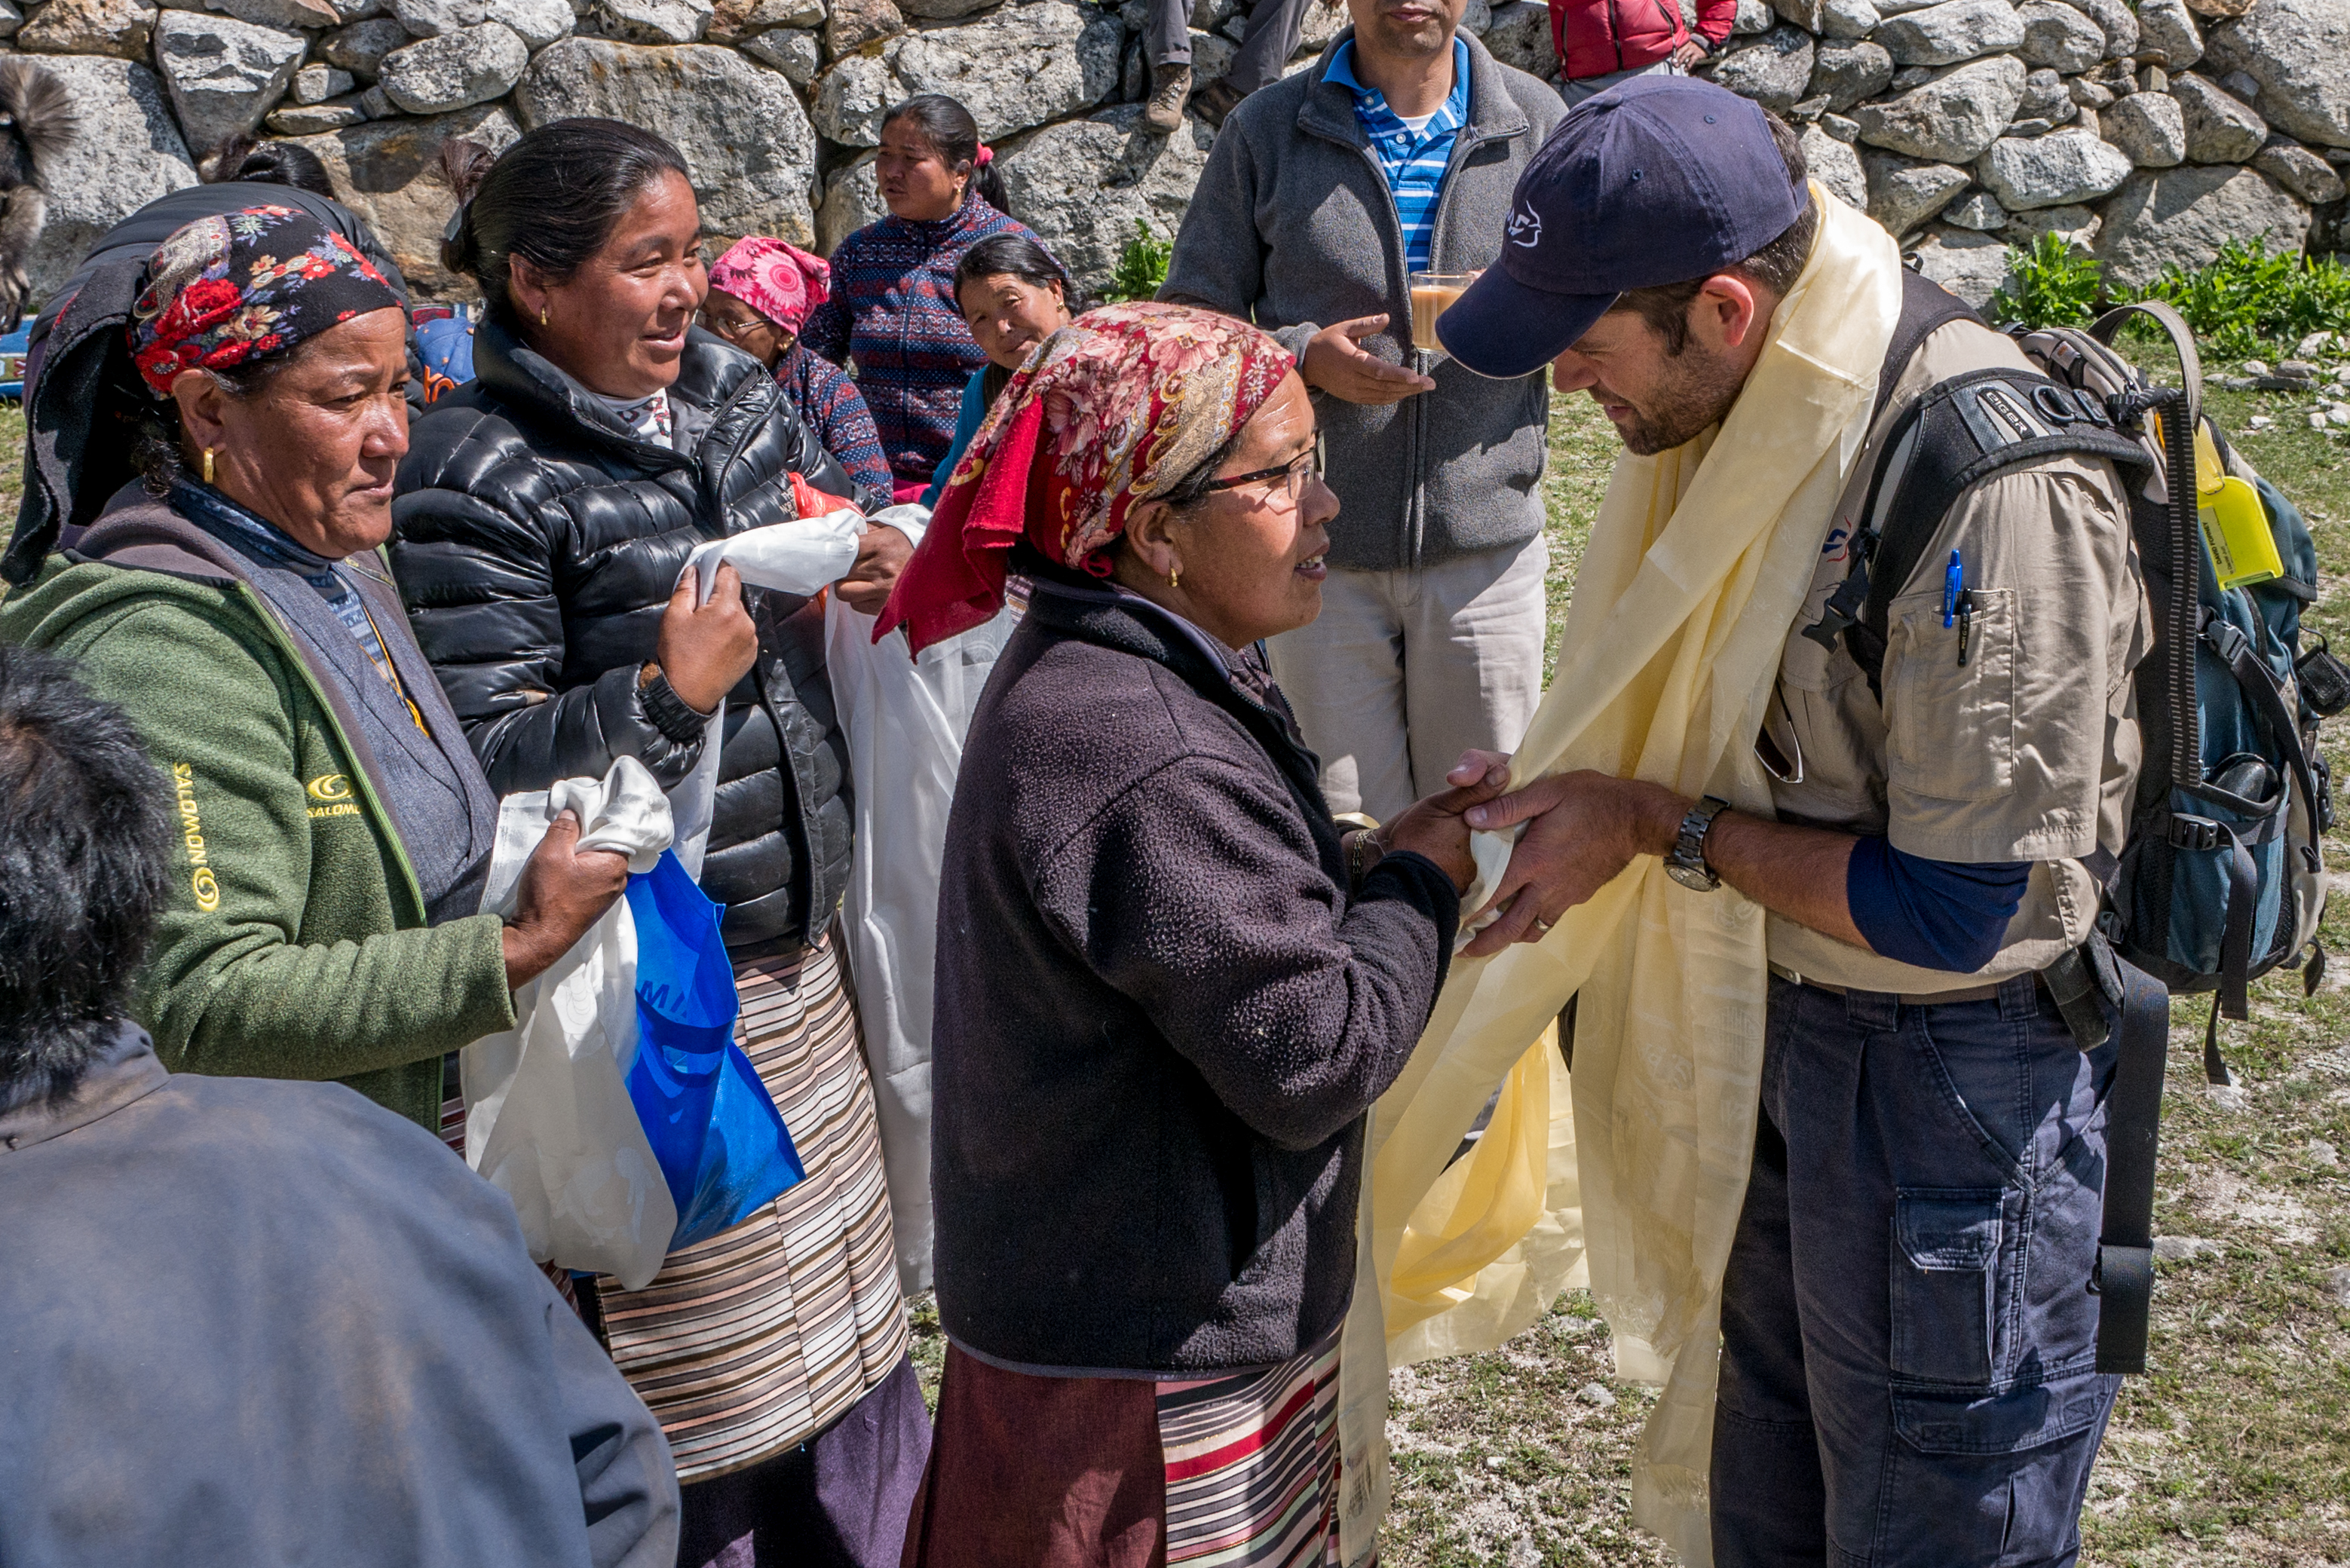 Aid in Nepal is in short supply